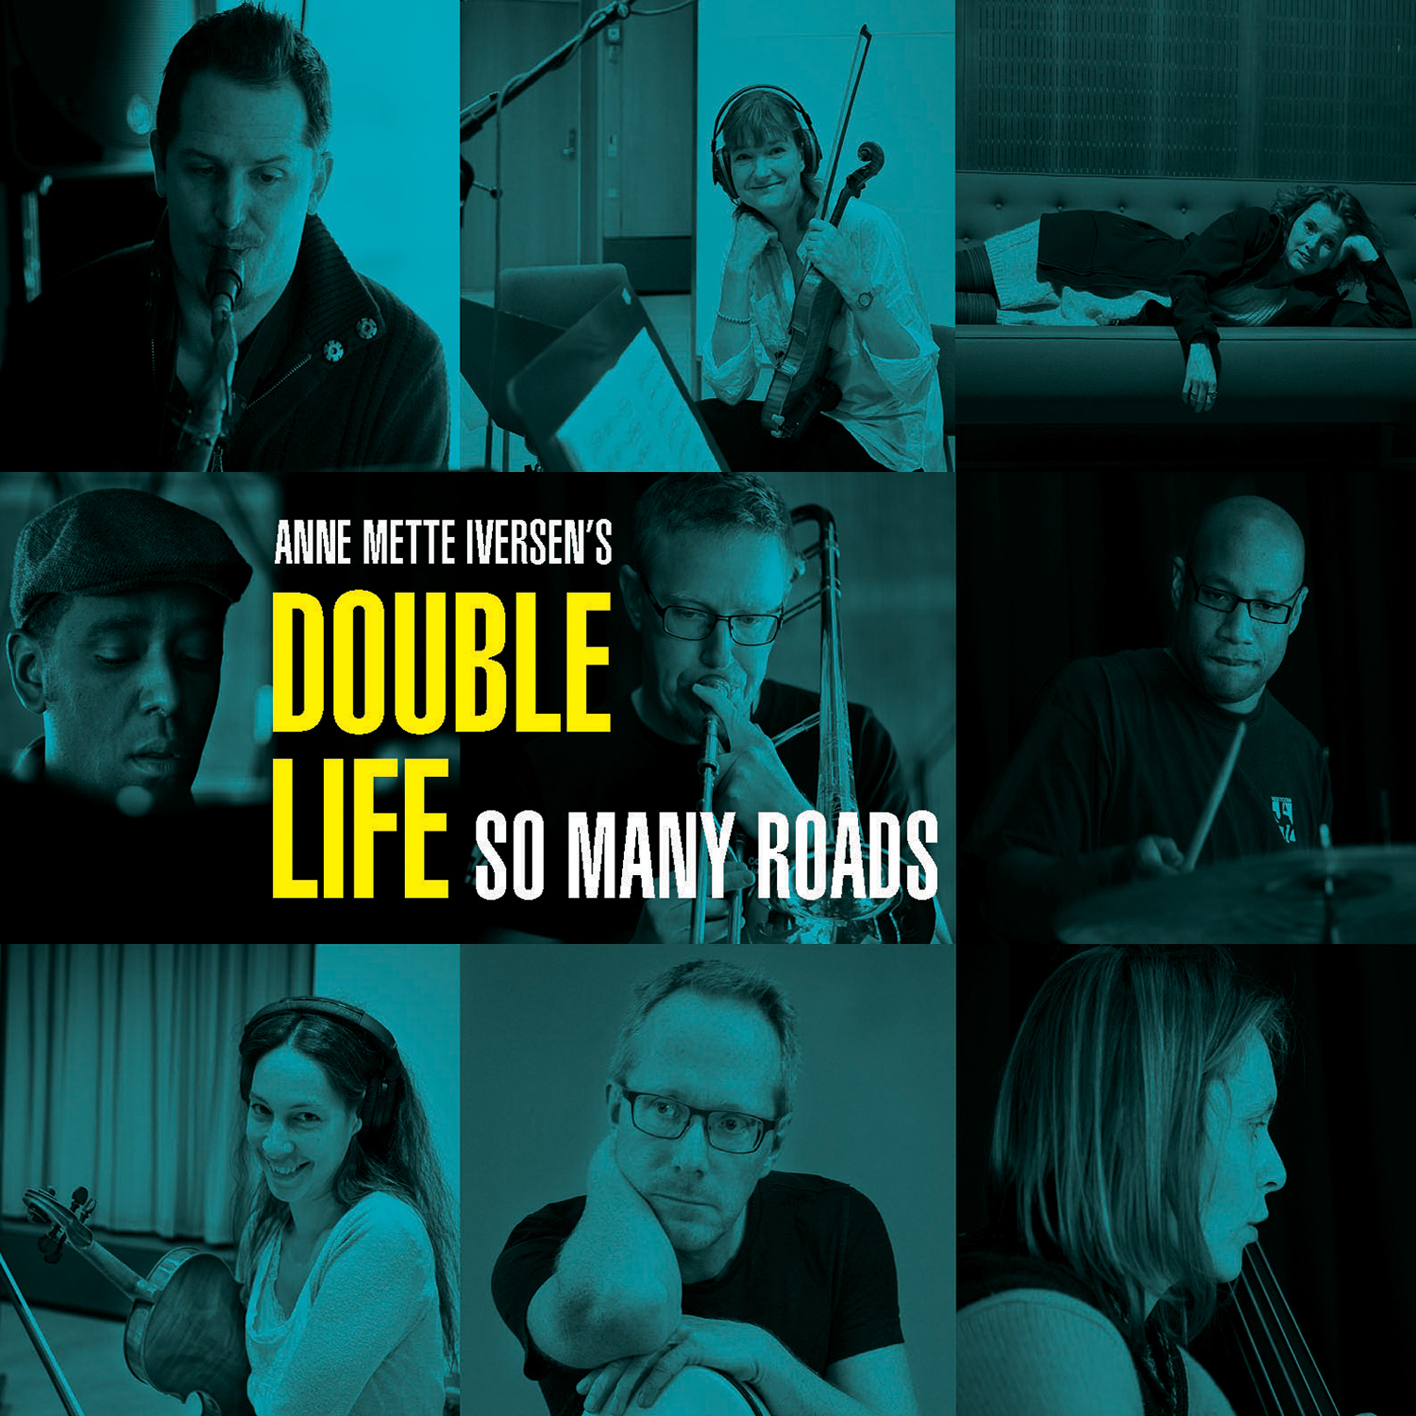 Double_Life_So_Many_Roads_Orchard